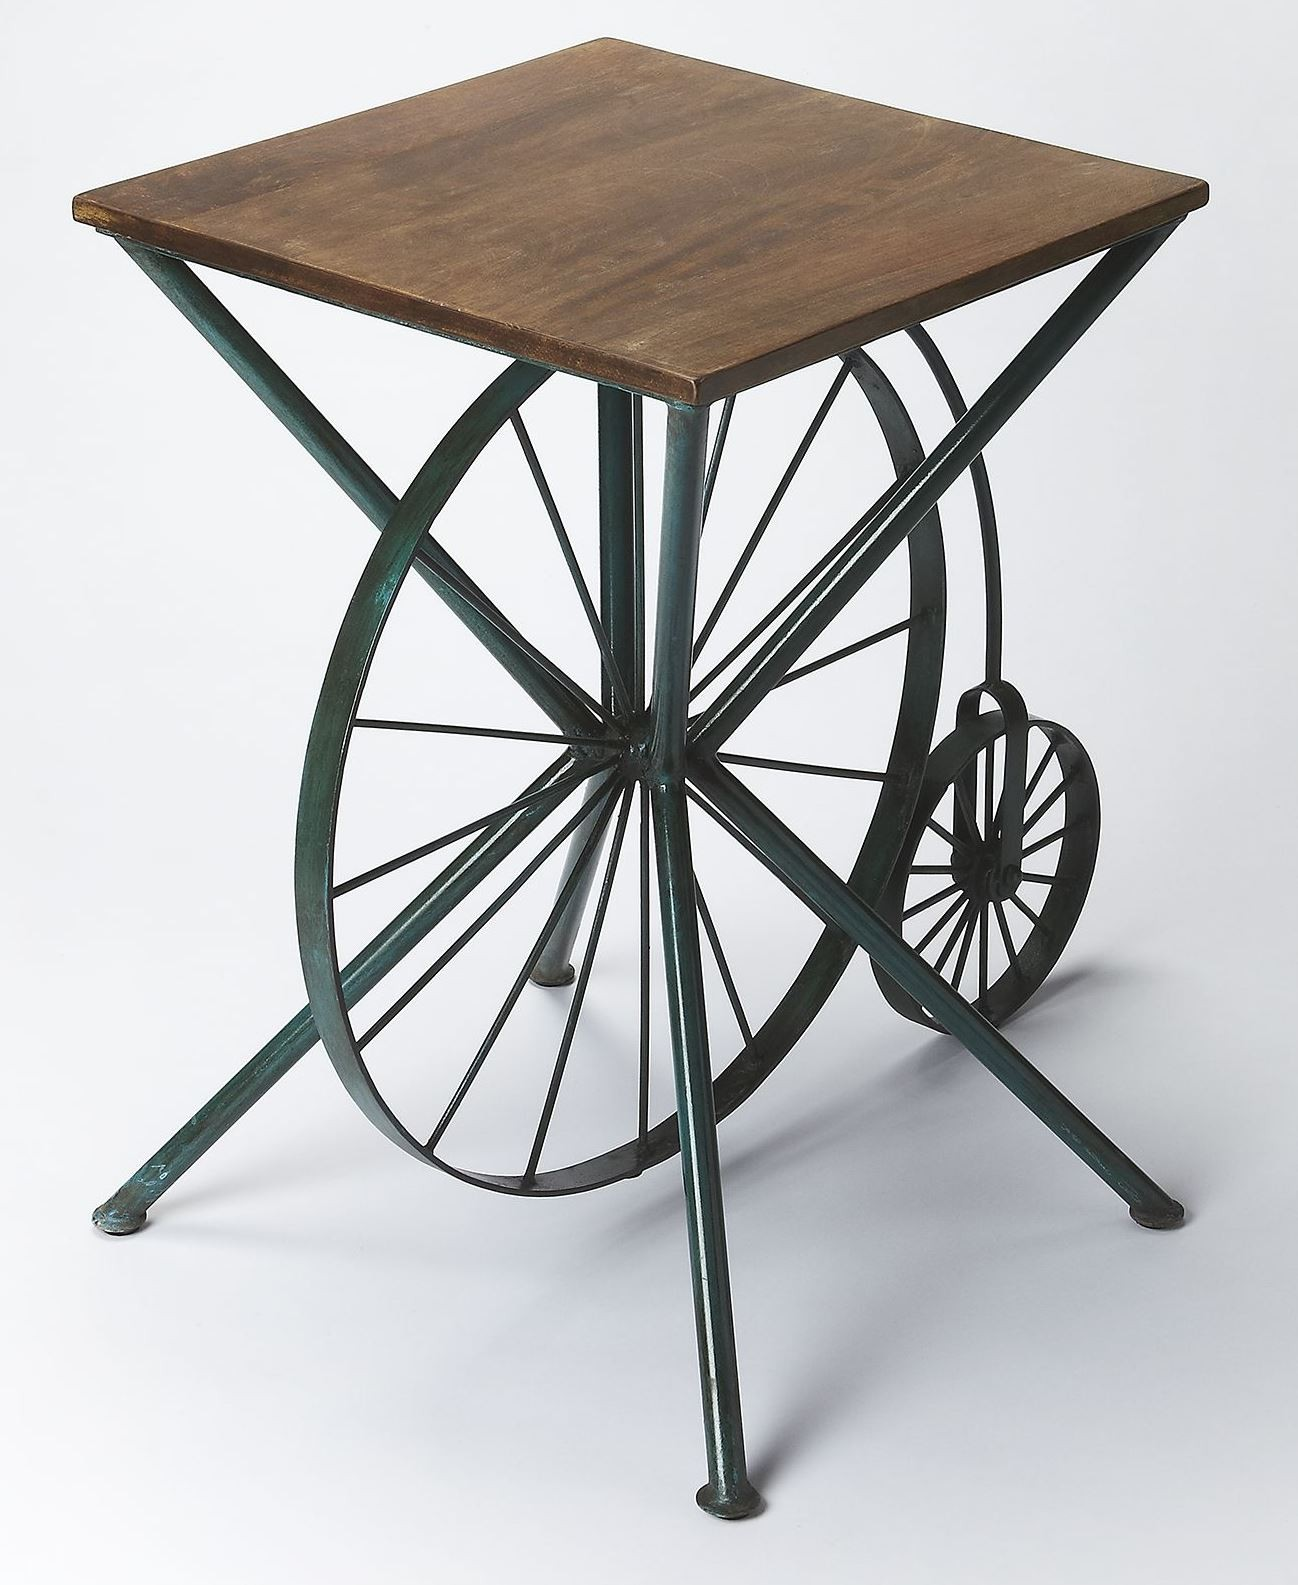 industrial chic accent table from butler brass wire crate bunnings outdoor dining beer cooler coffee marble top turquoise furniture small white glass lamp umbrella stand tennis